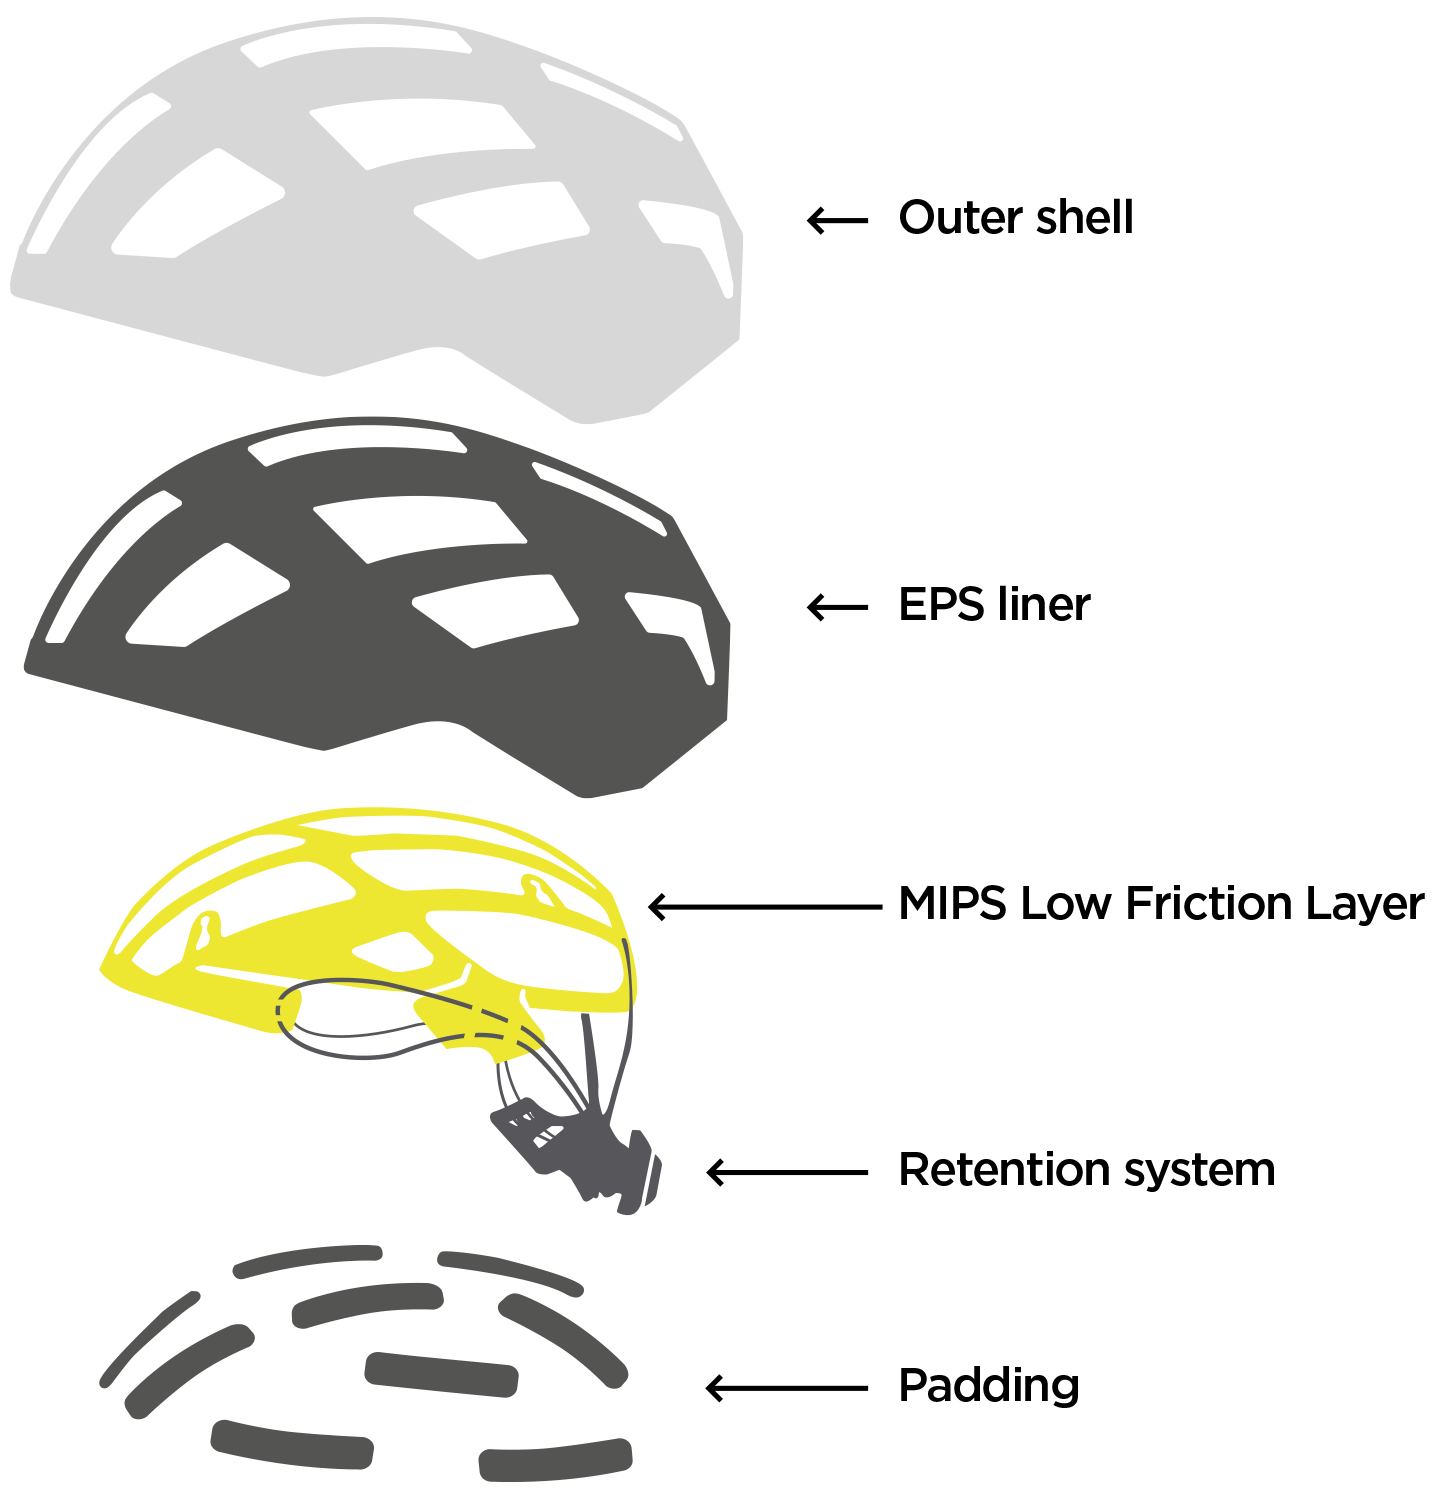 What is MIPS on a helmet?